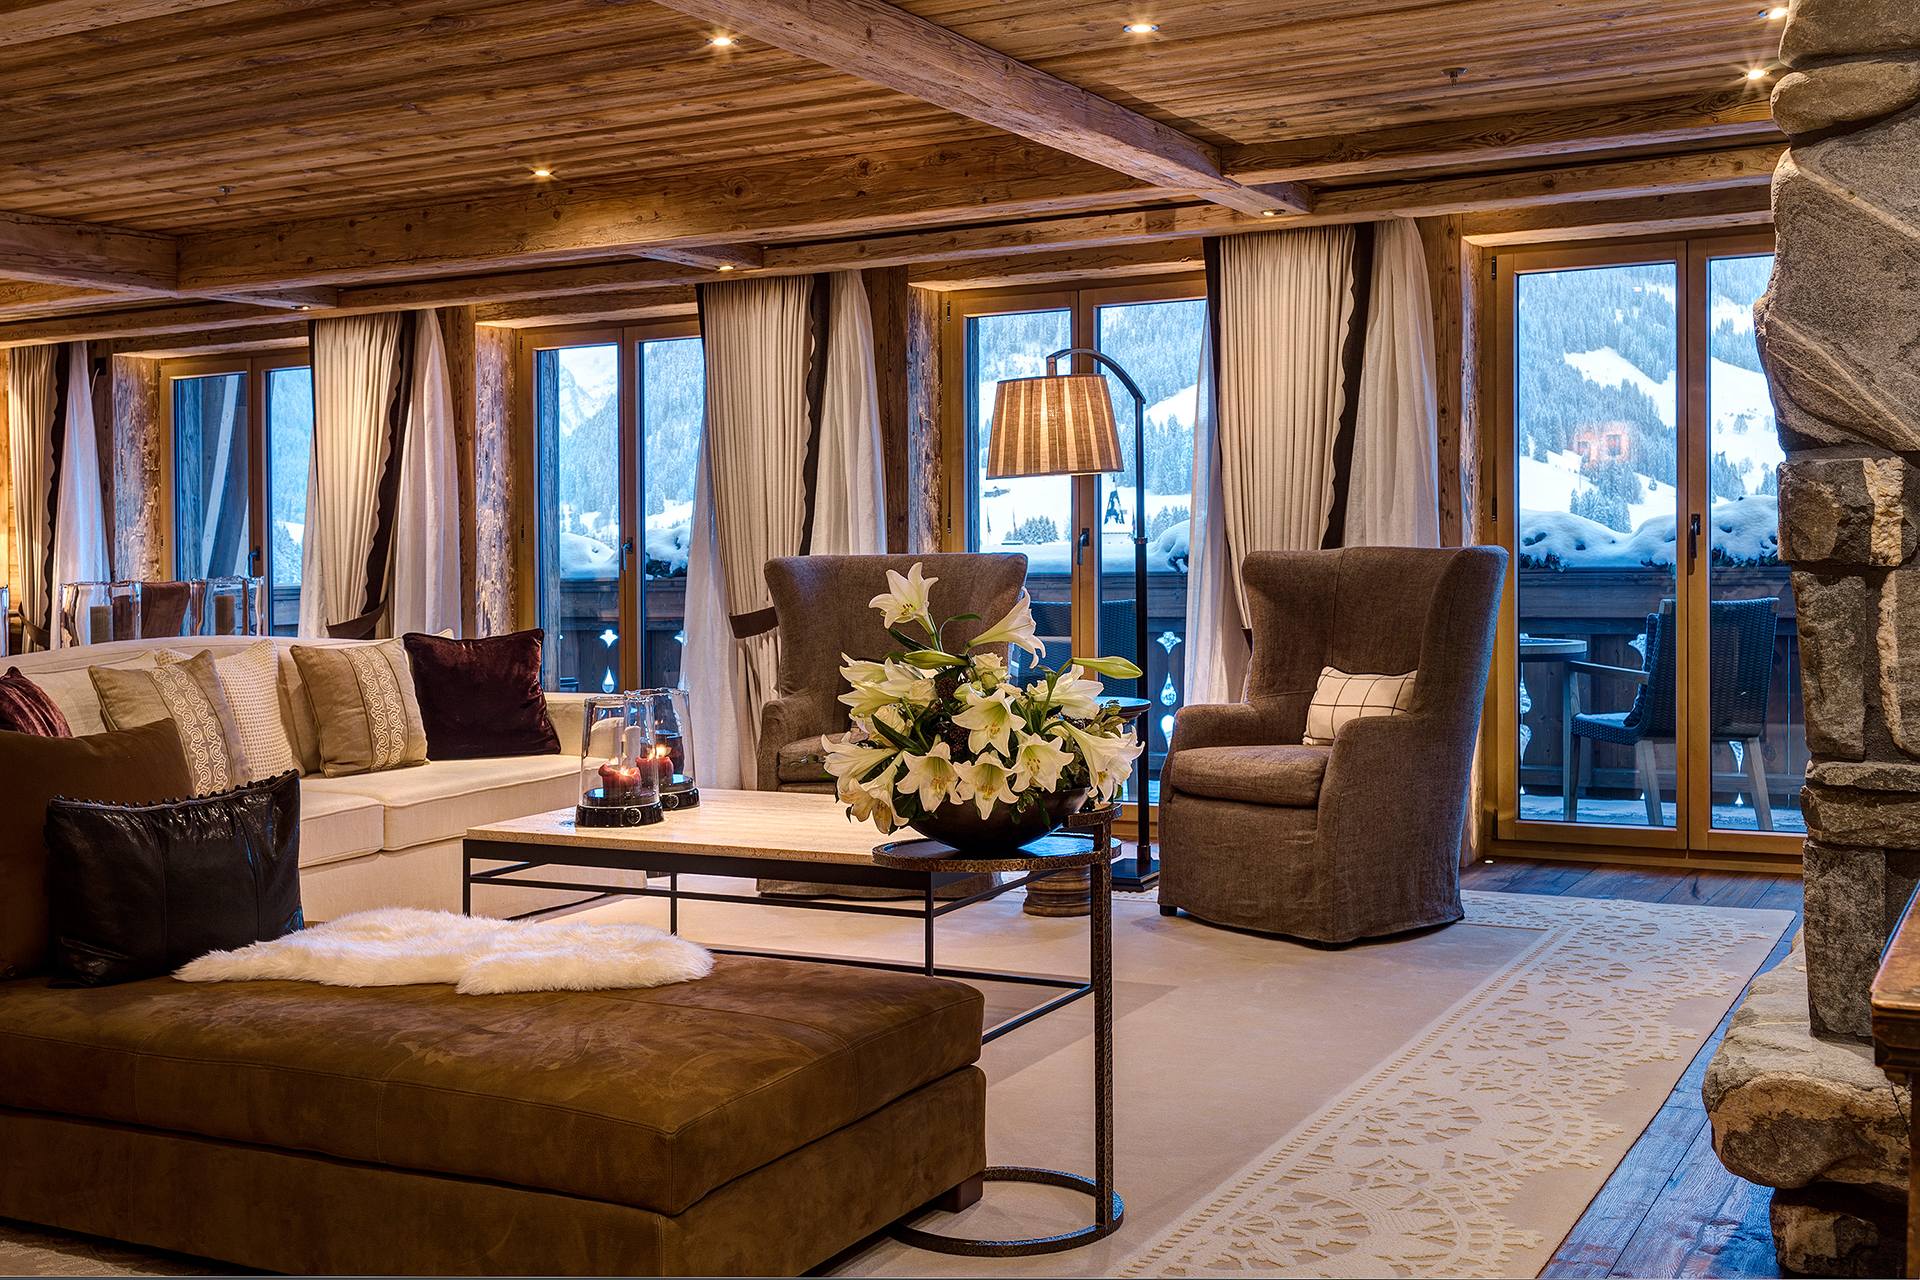 TheAlpinaGstaad_Rooms&Suites_0265_1920.jpg